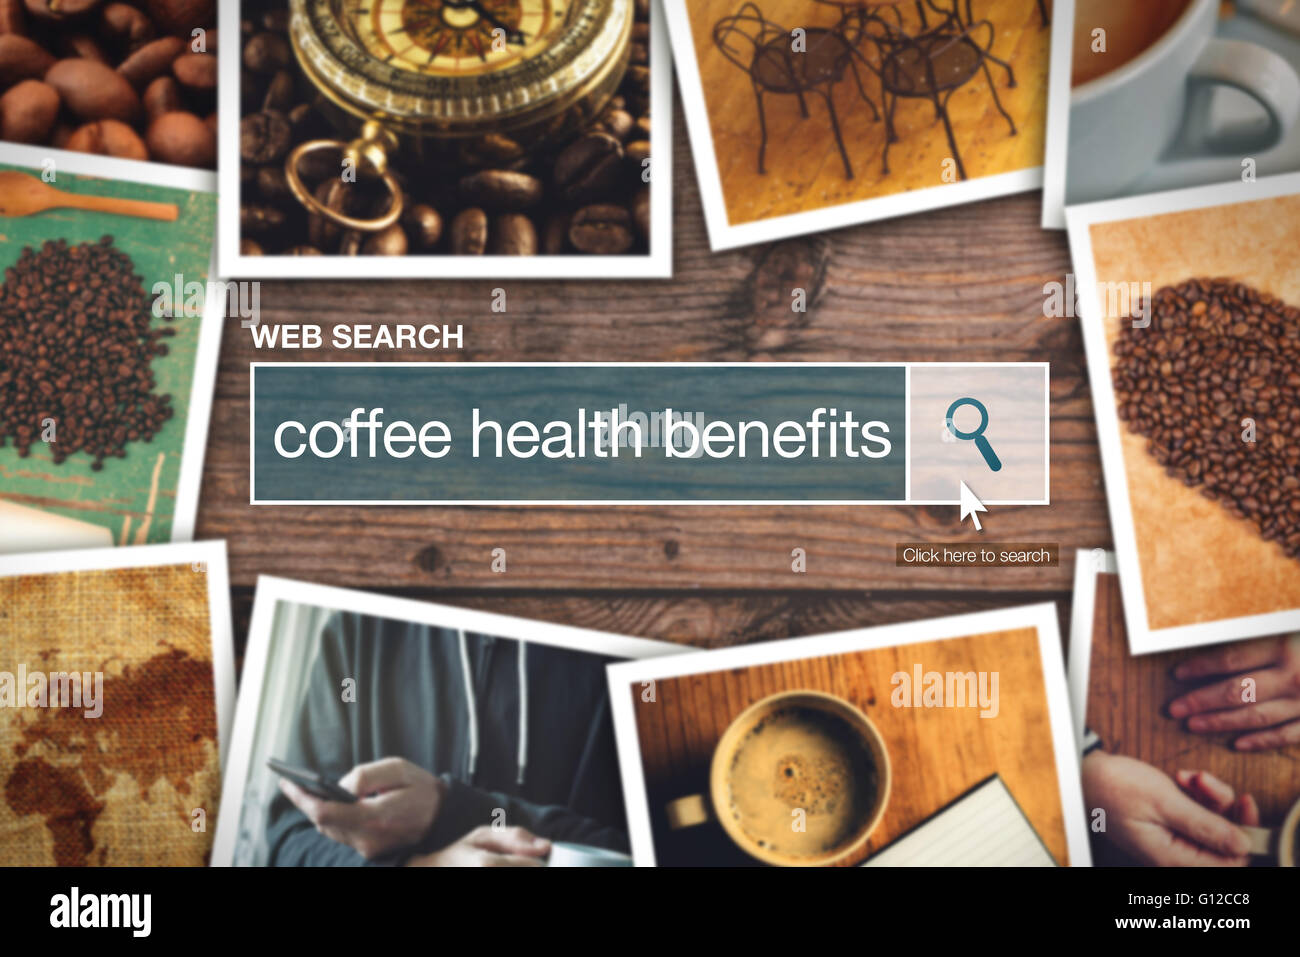 Web search bar glossary term - coffee health benefits definition in internet glossary. - Stock Image